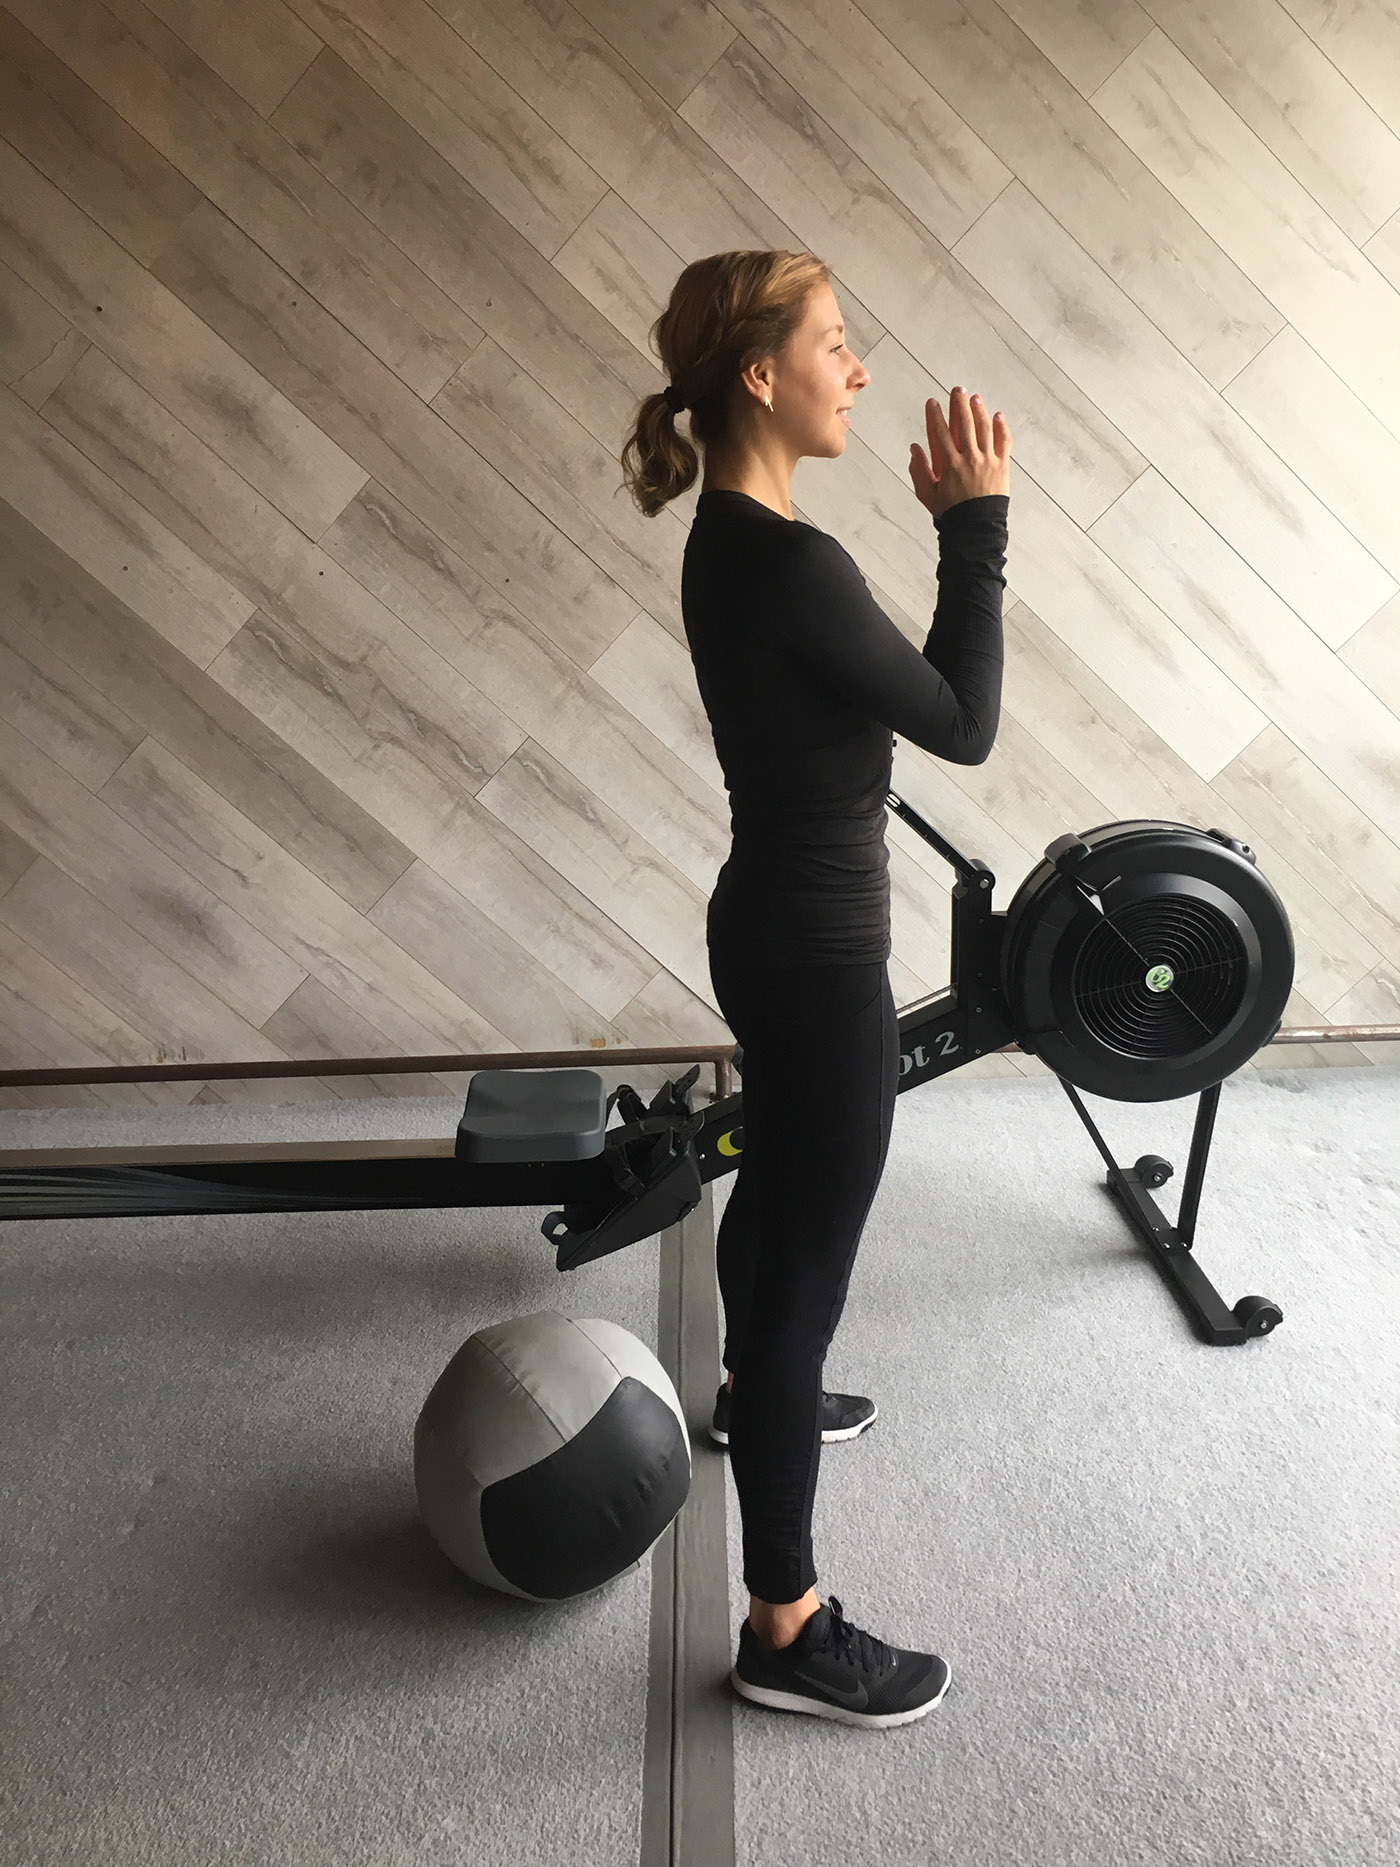 Get in the Zone With This Rowing and Med Ball EMOM Workout - A Sweat